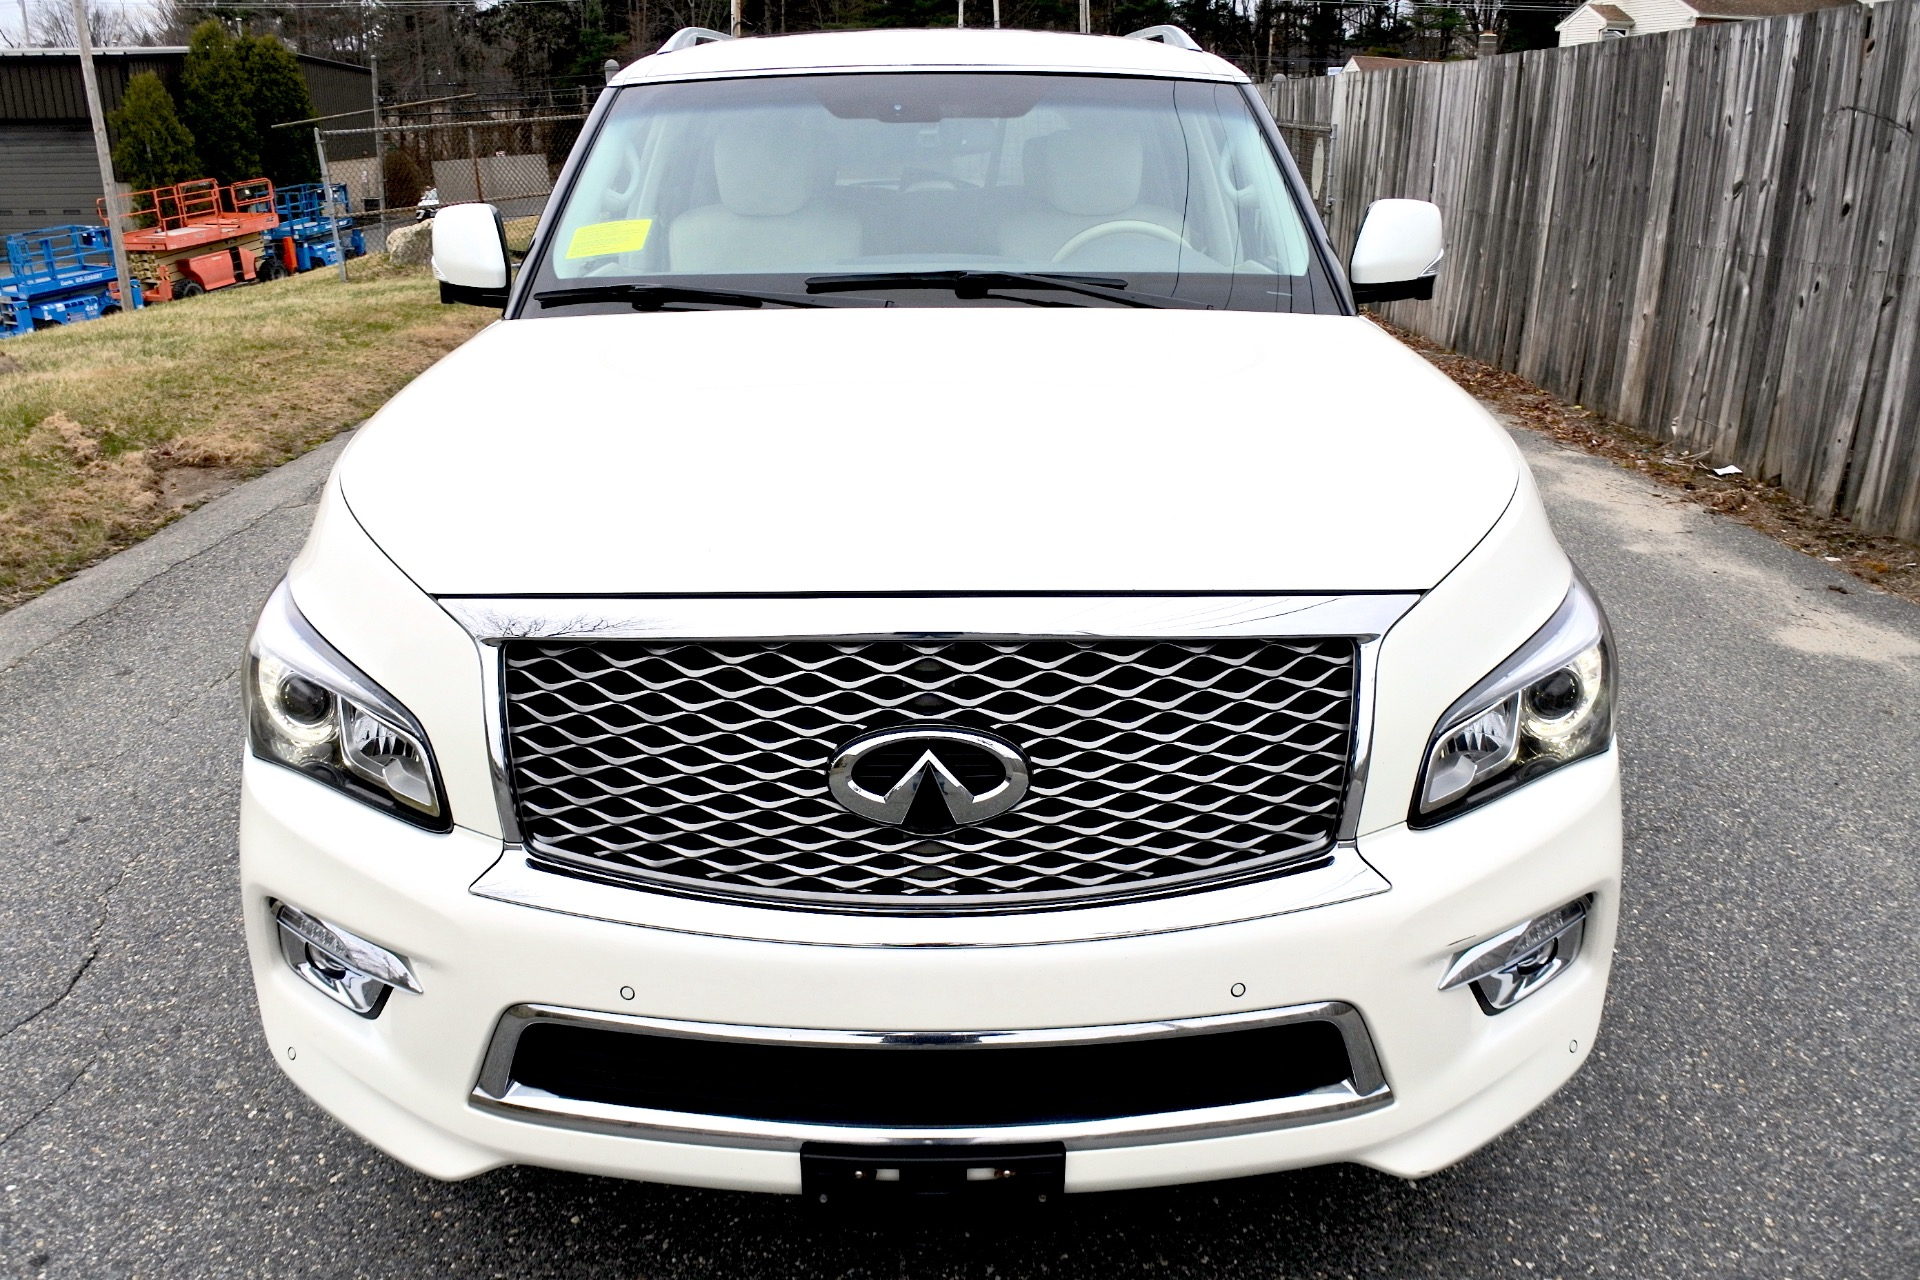 Used 2015 Infiniti Qx80 Limited 4WD Used 2015 Infiniti Qx80 Limited 4WD for sale  at Metro West Motorcars LLC in Shrewsbury MA 8